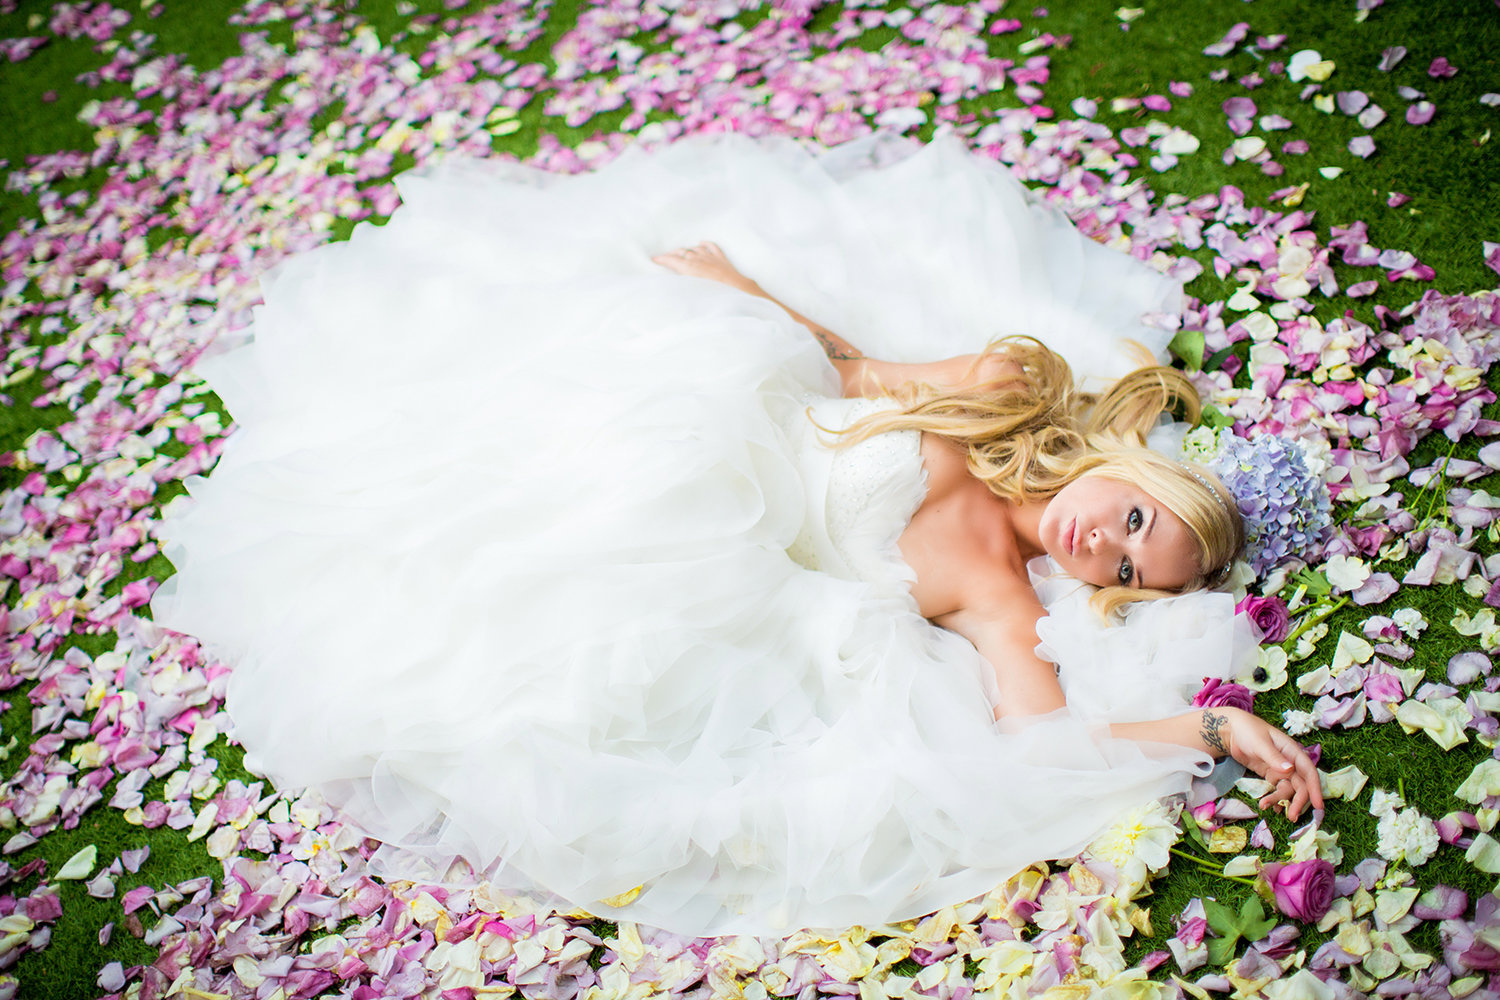 Twin Oaks wedding photos stunning rose petals with bride